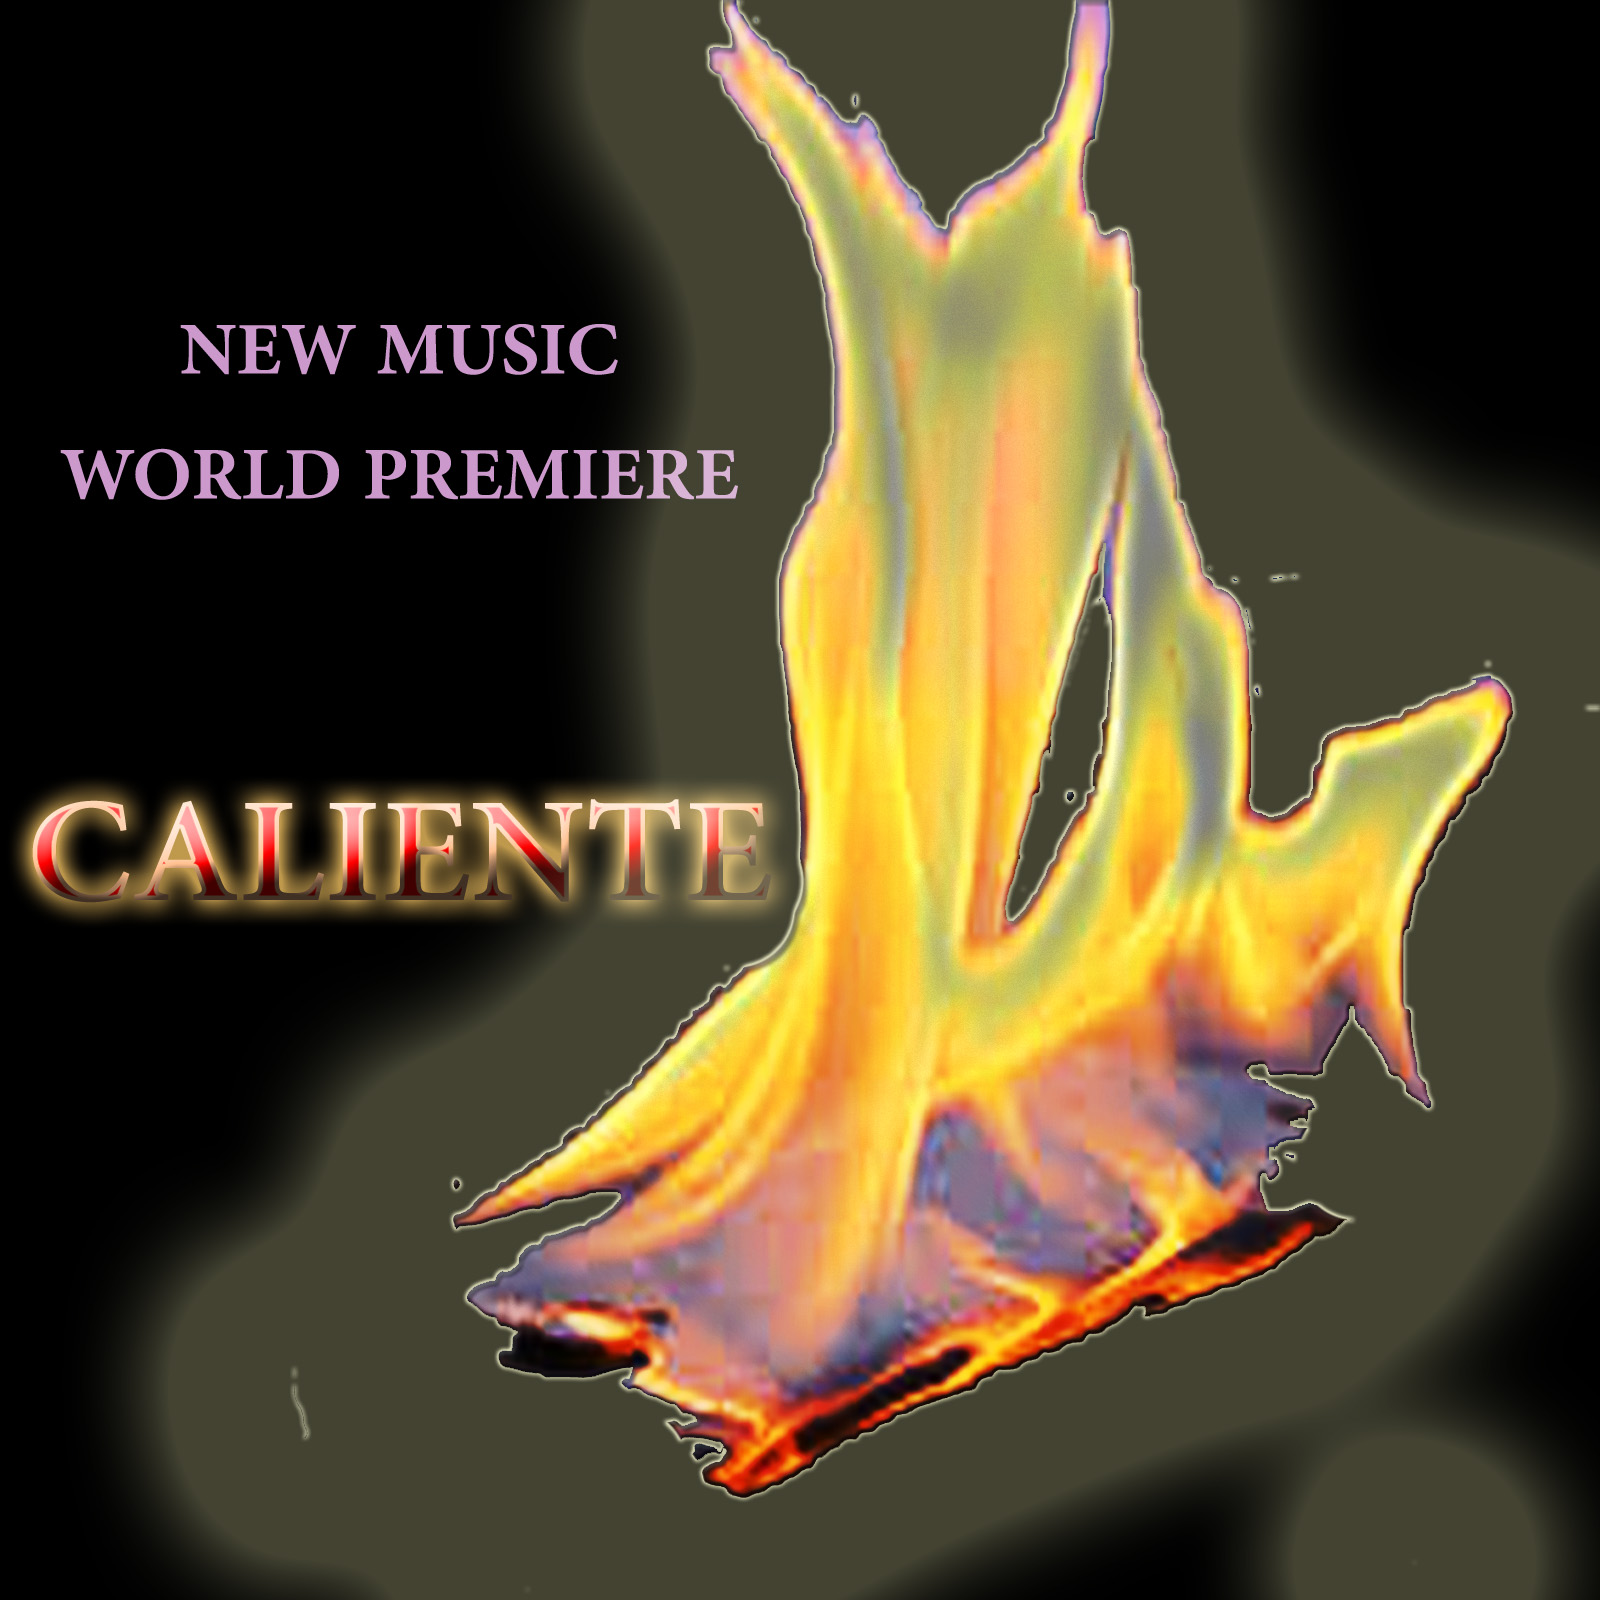 Organic Music Promotion via Playlist Placement Caliente New Music World Premiere